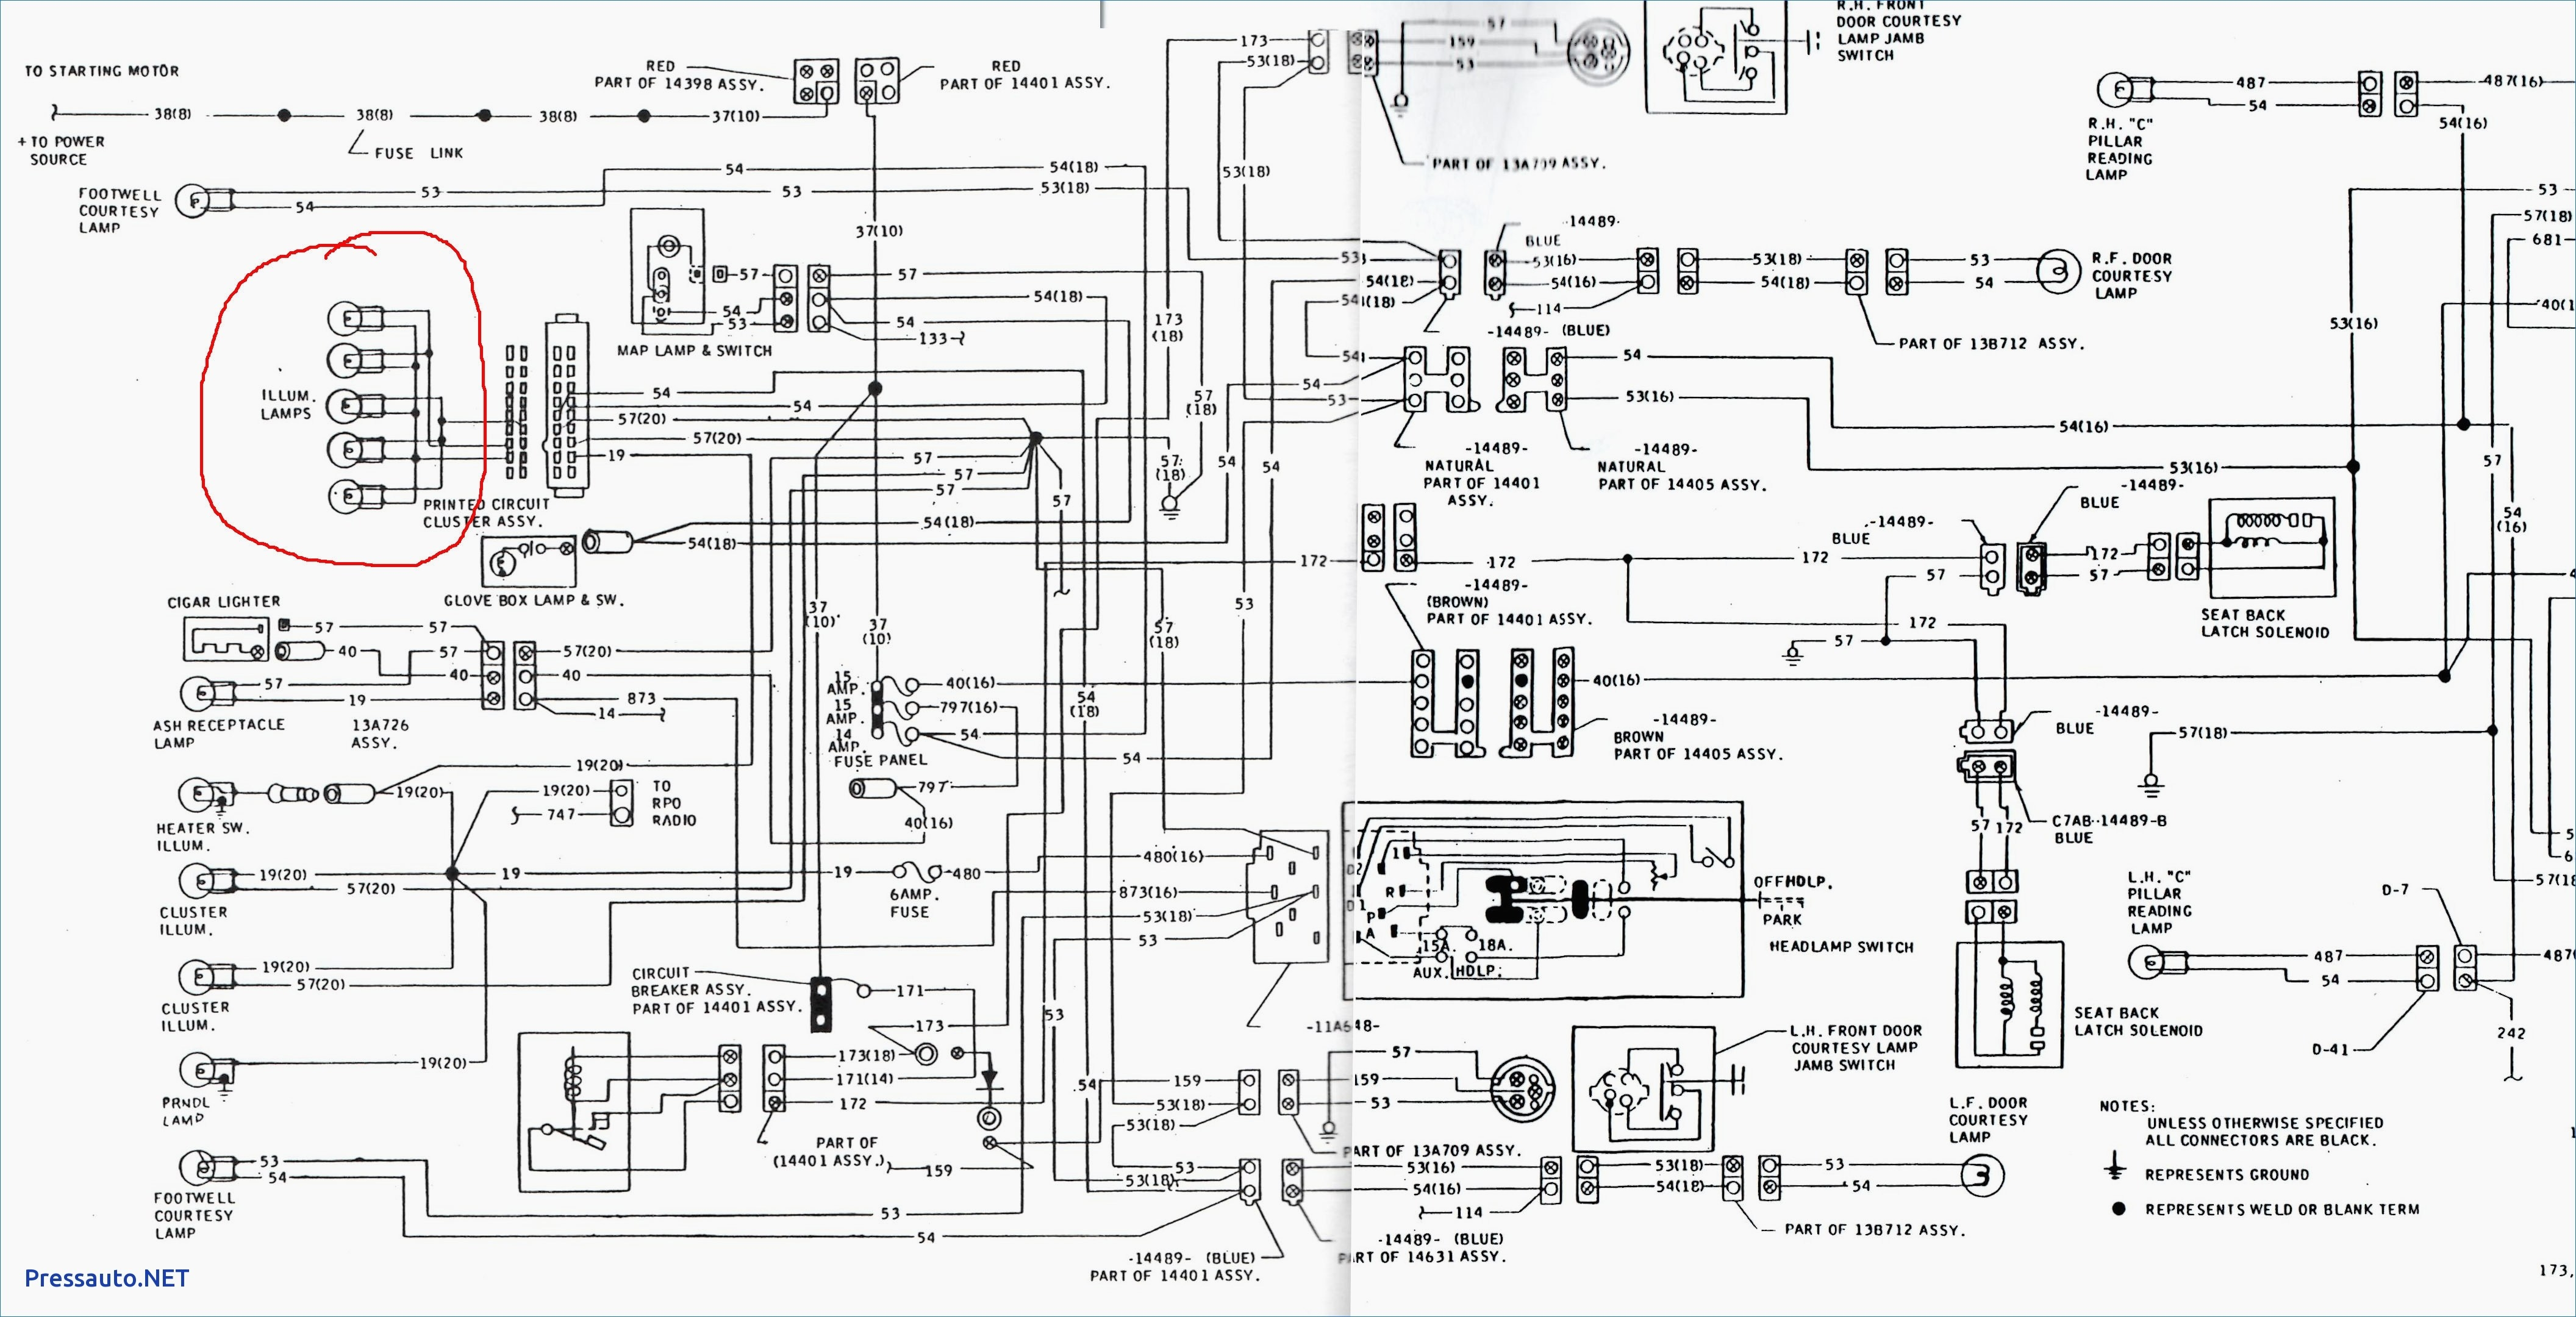 luxpro thermostat wiring diagram Download-robertshaw 9520 thermostat wiring diagram kwikpik me in autoctono me rh autoctono me Carrier Thermostat Wiring Diagram LuxPro Thermostat Wiring Diagram 16-c